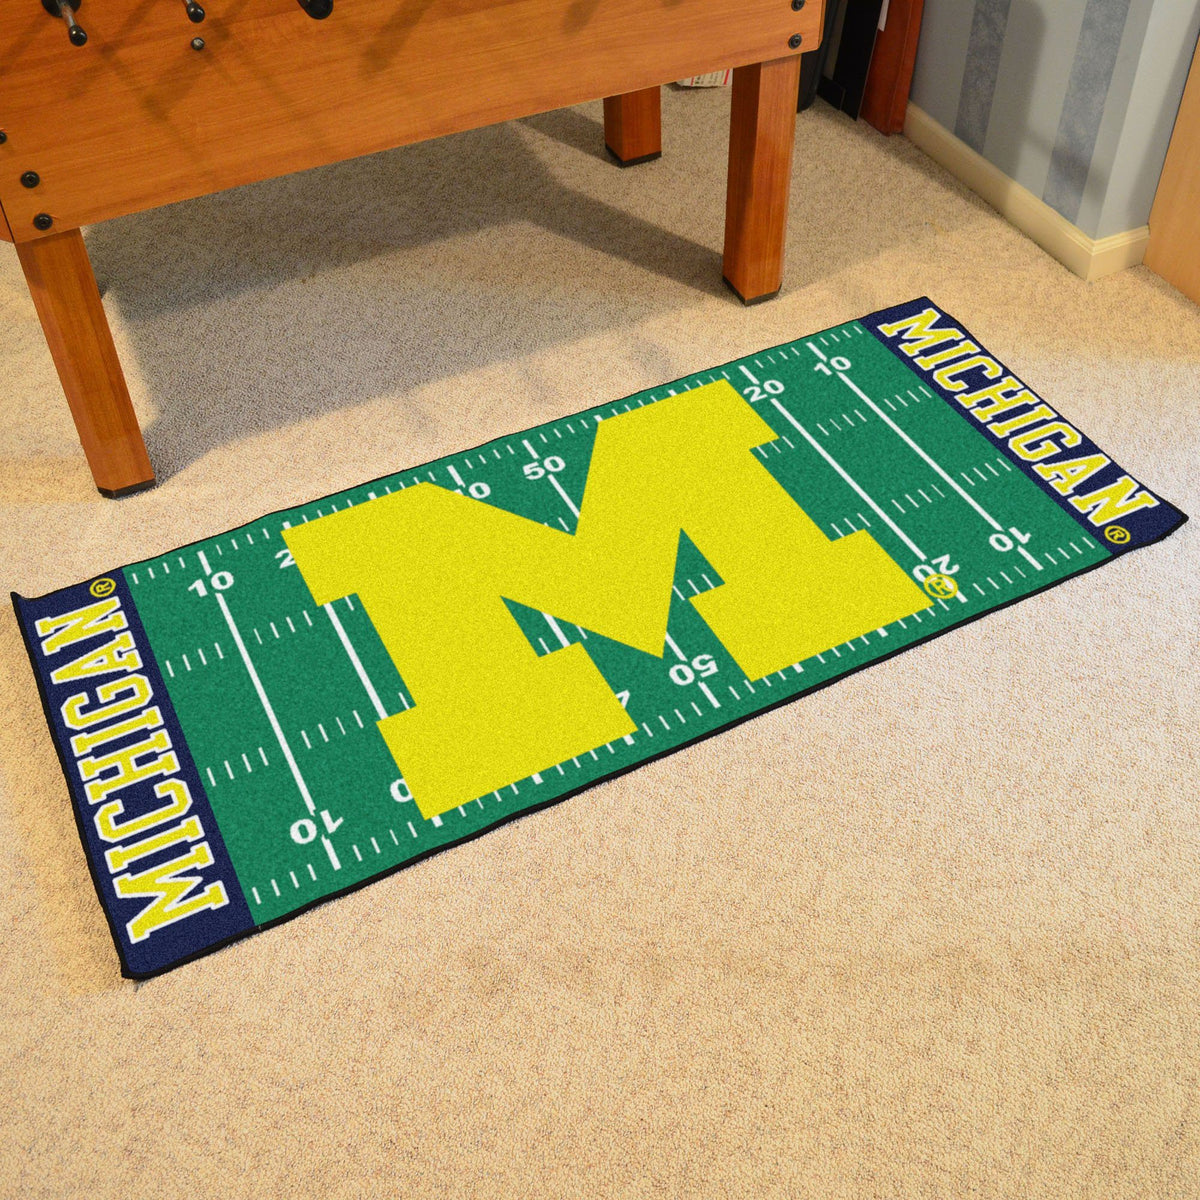 Collegiate - Football Field Runner Collegiate Mats, Rectangular Mats, Football Field Runner, Collegiate, Home Fan Mats Michigan